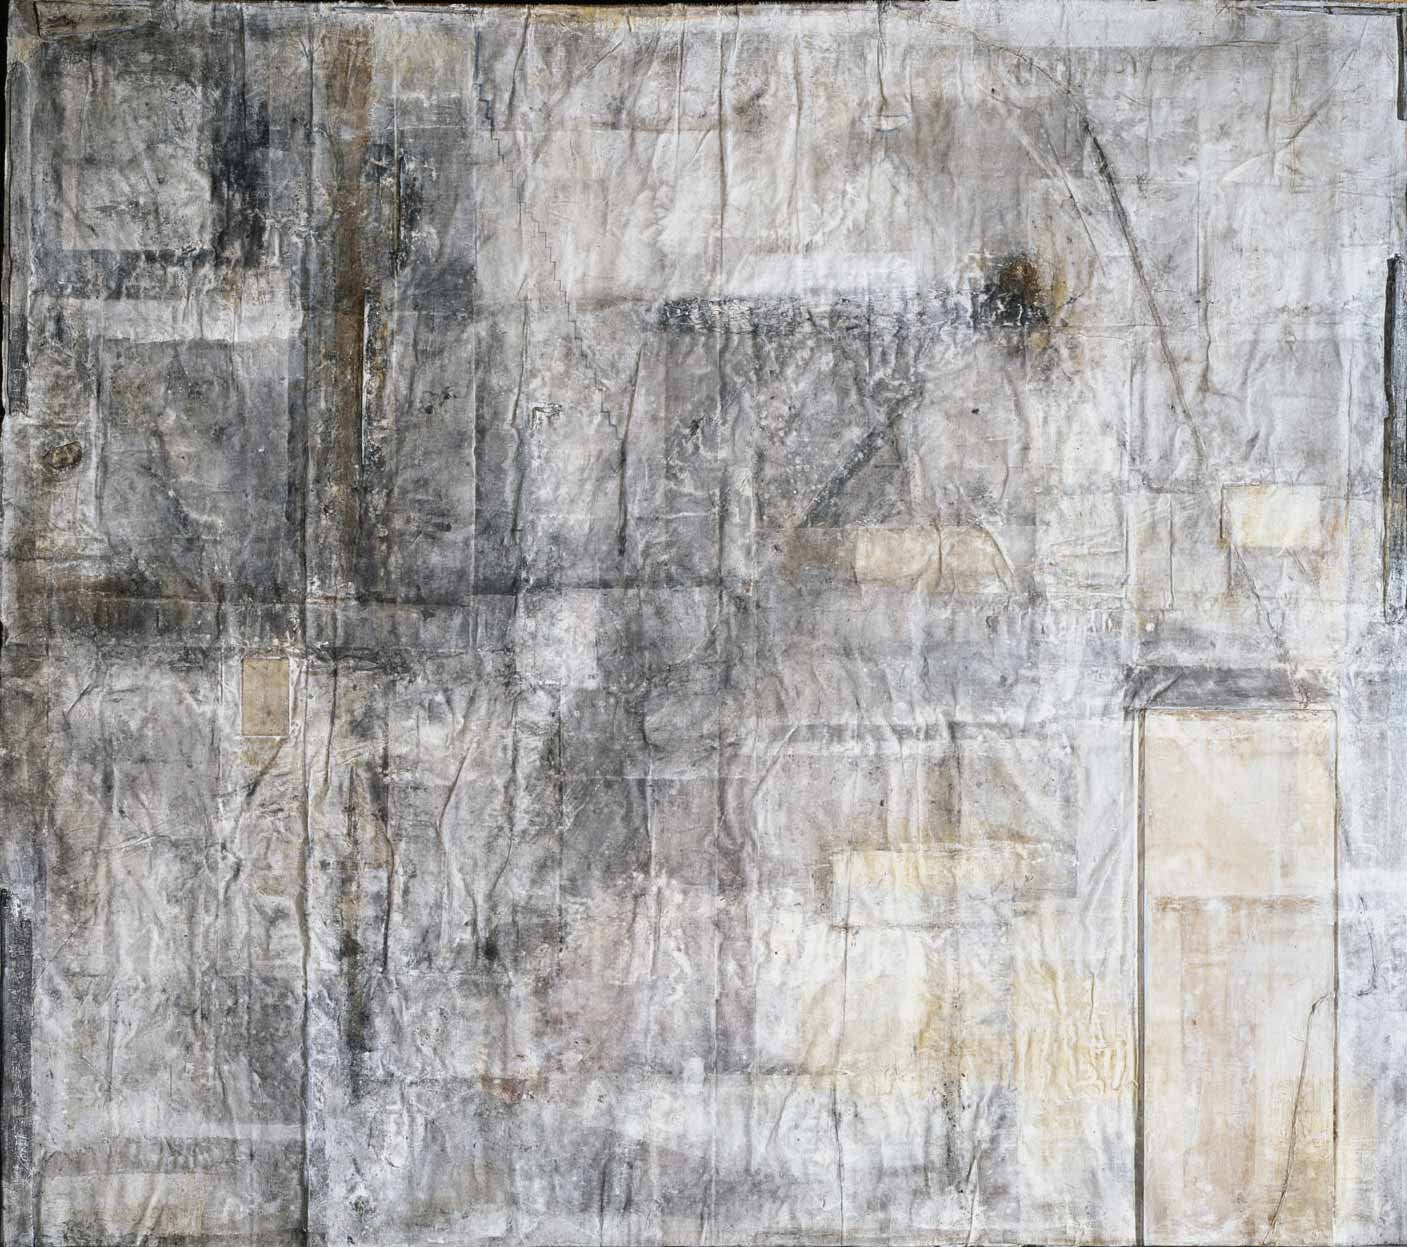 Collage with a Door   1996   Charcoal, ink, mineral pigment, wood, string, washi on canvas   158 x 197 inches